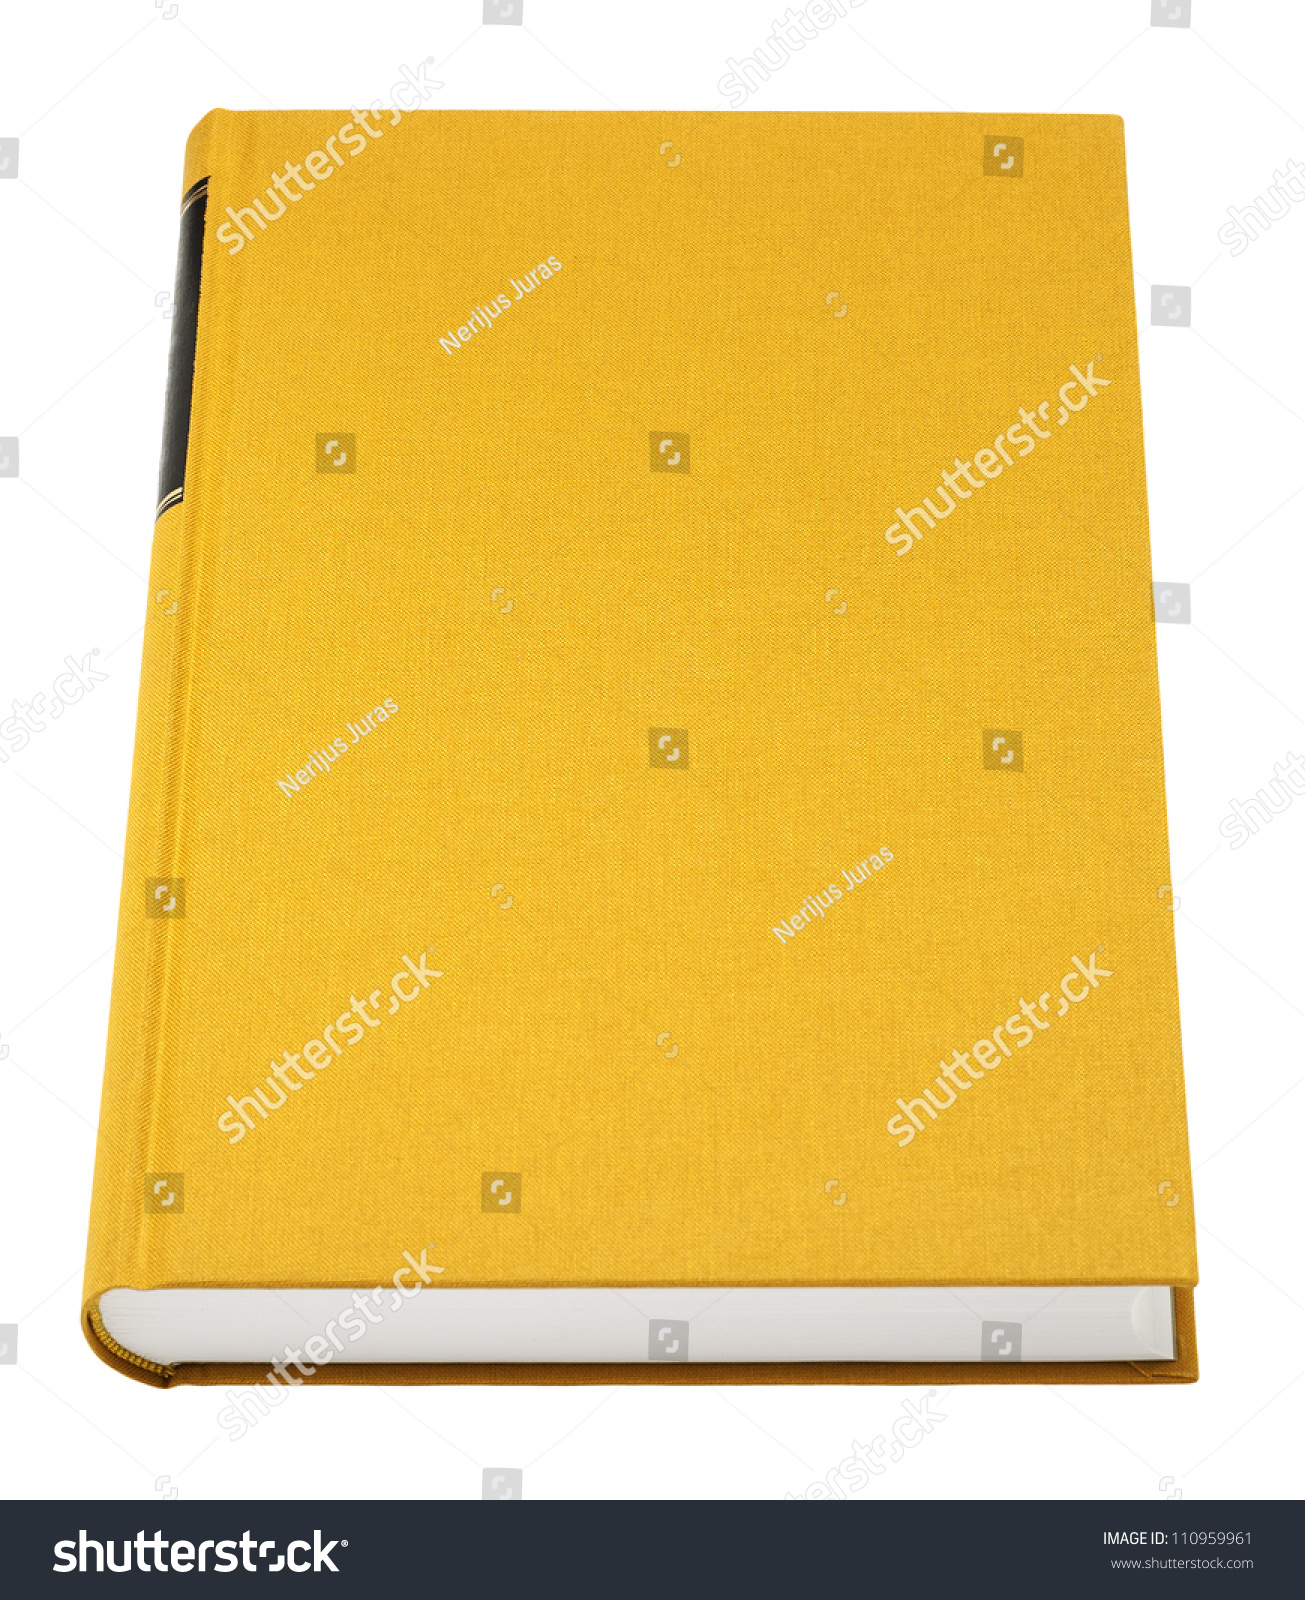 Book With Black And Yellow Cover : Yellow book isolated on white black stock photo